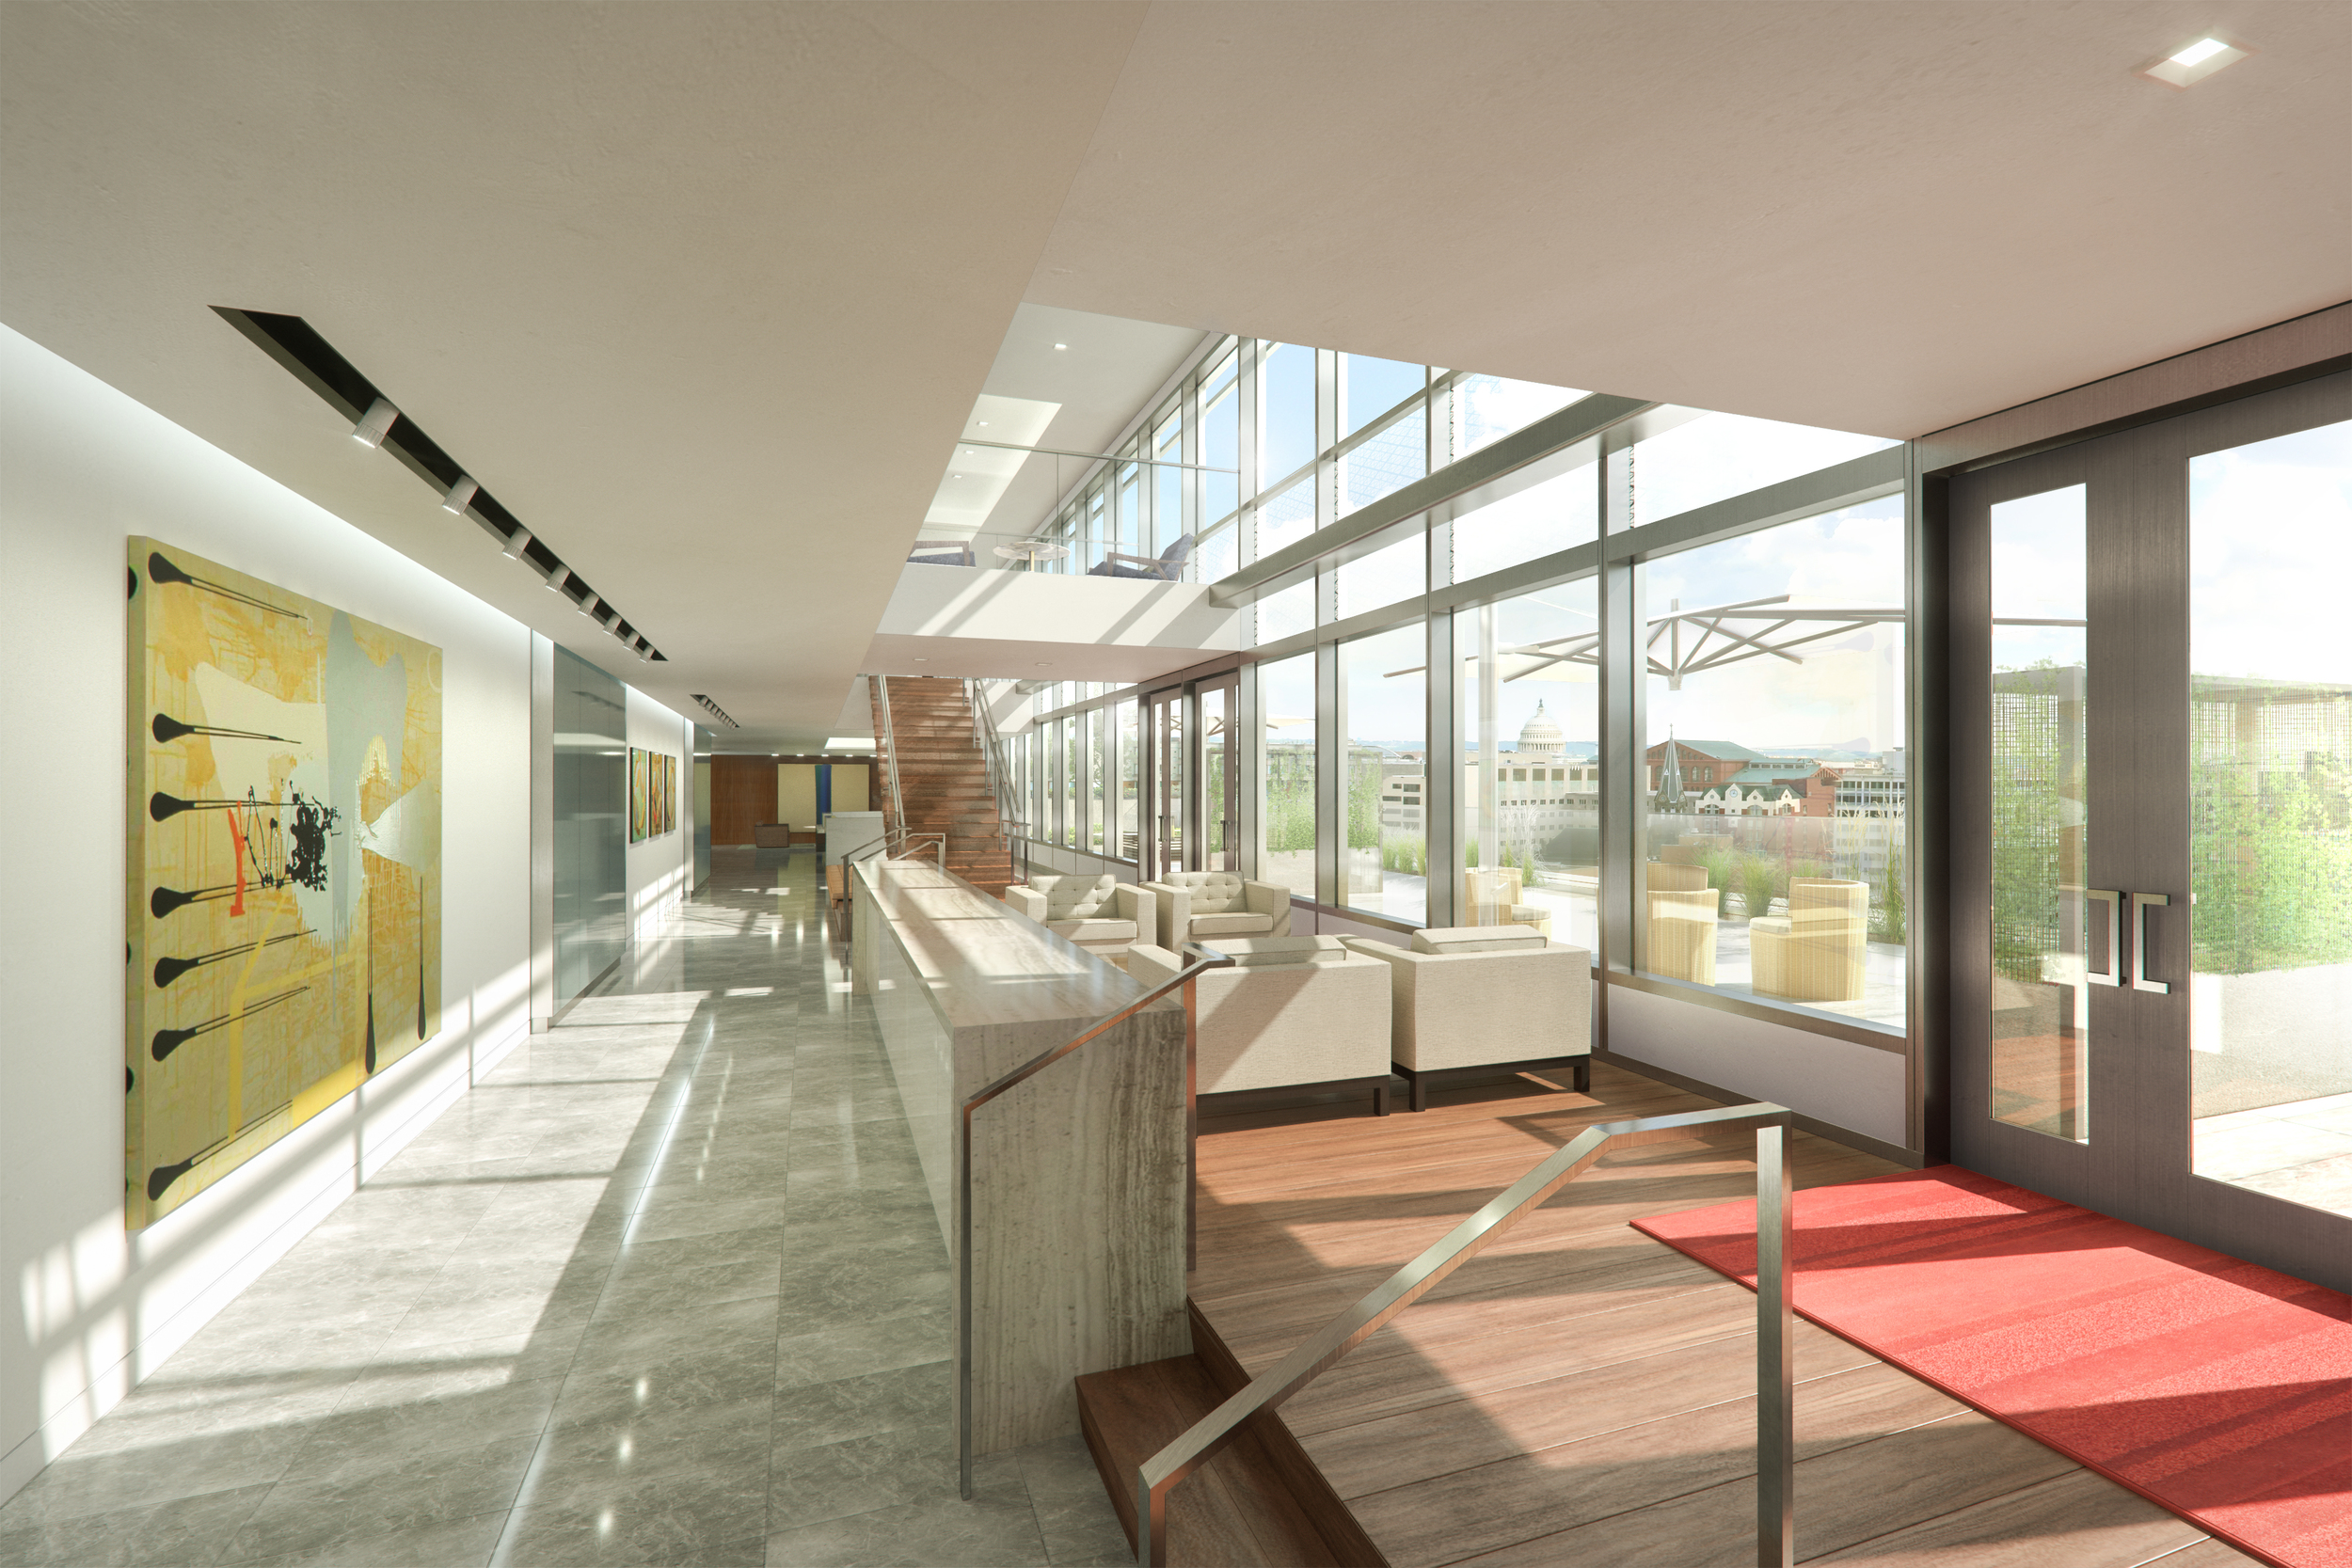 OFFICE LOBBY SPACE  Washington, DC |  Client:  HYL Architecture